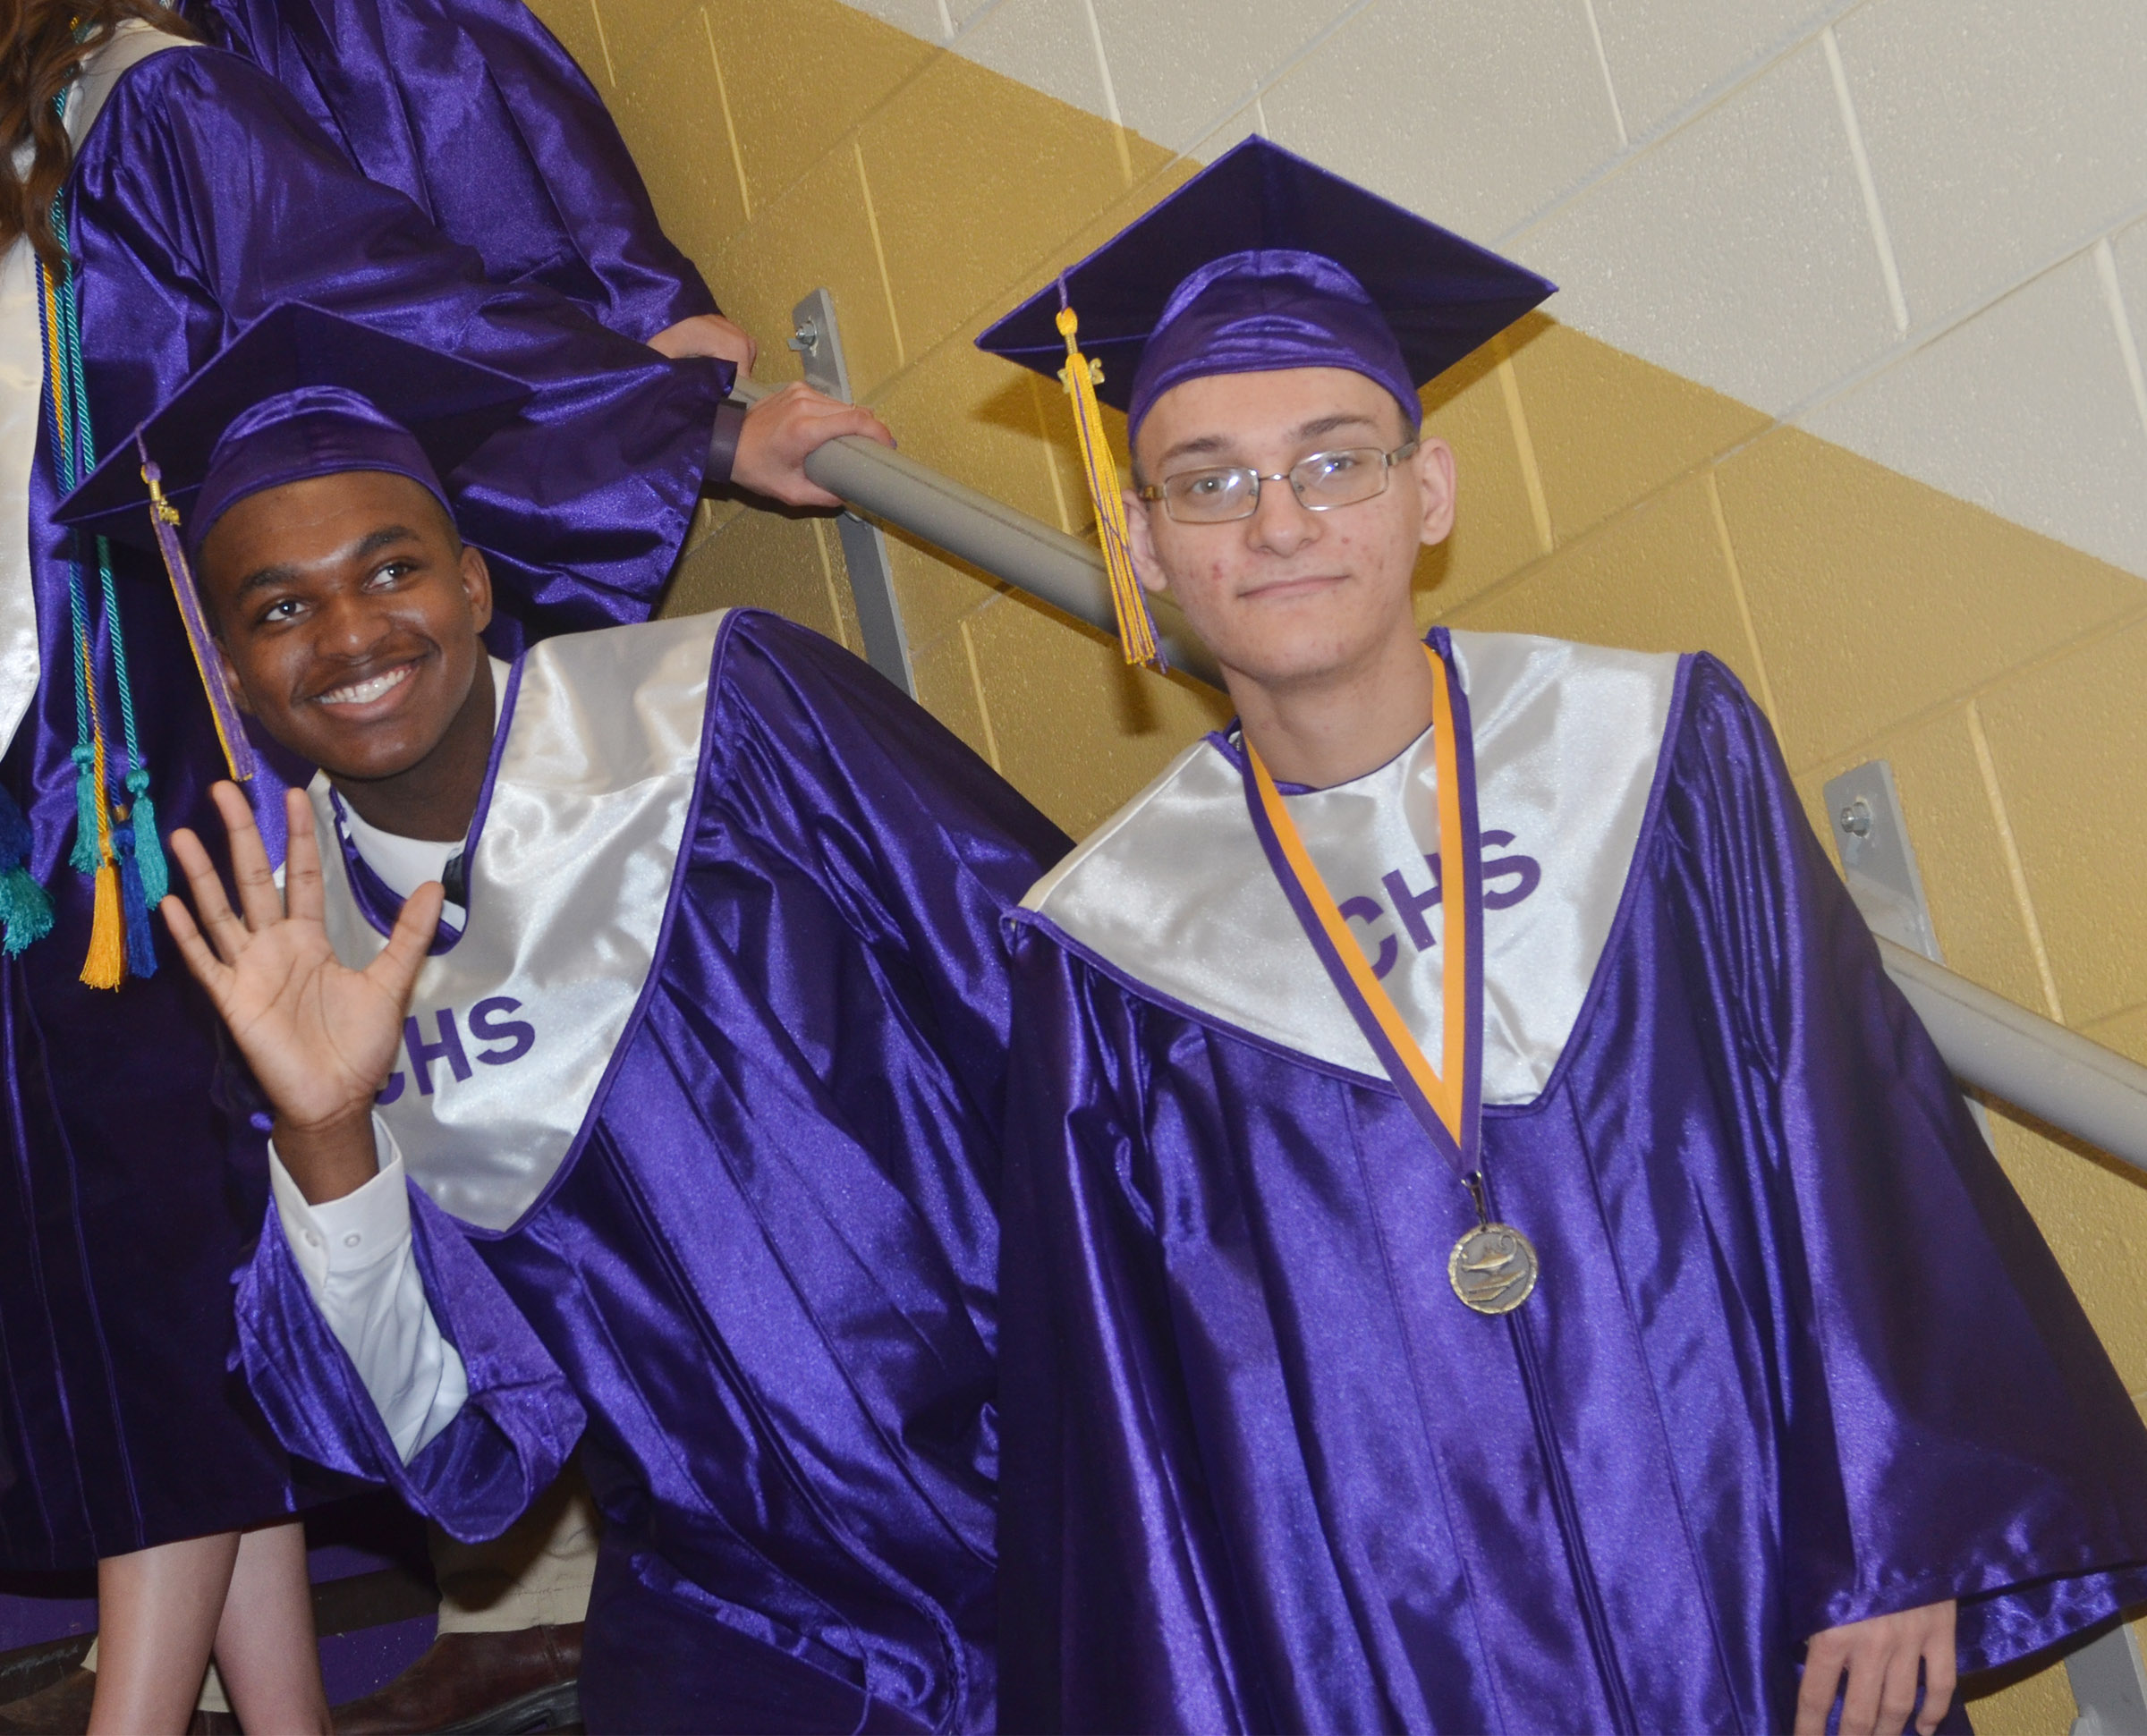 CHS senior Darius Bell, at left, waives to his family as he and classmate Chase Atwood wait for the graduation ceremony to begin.